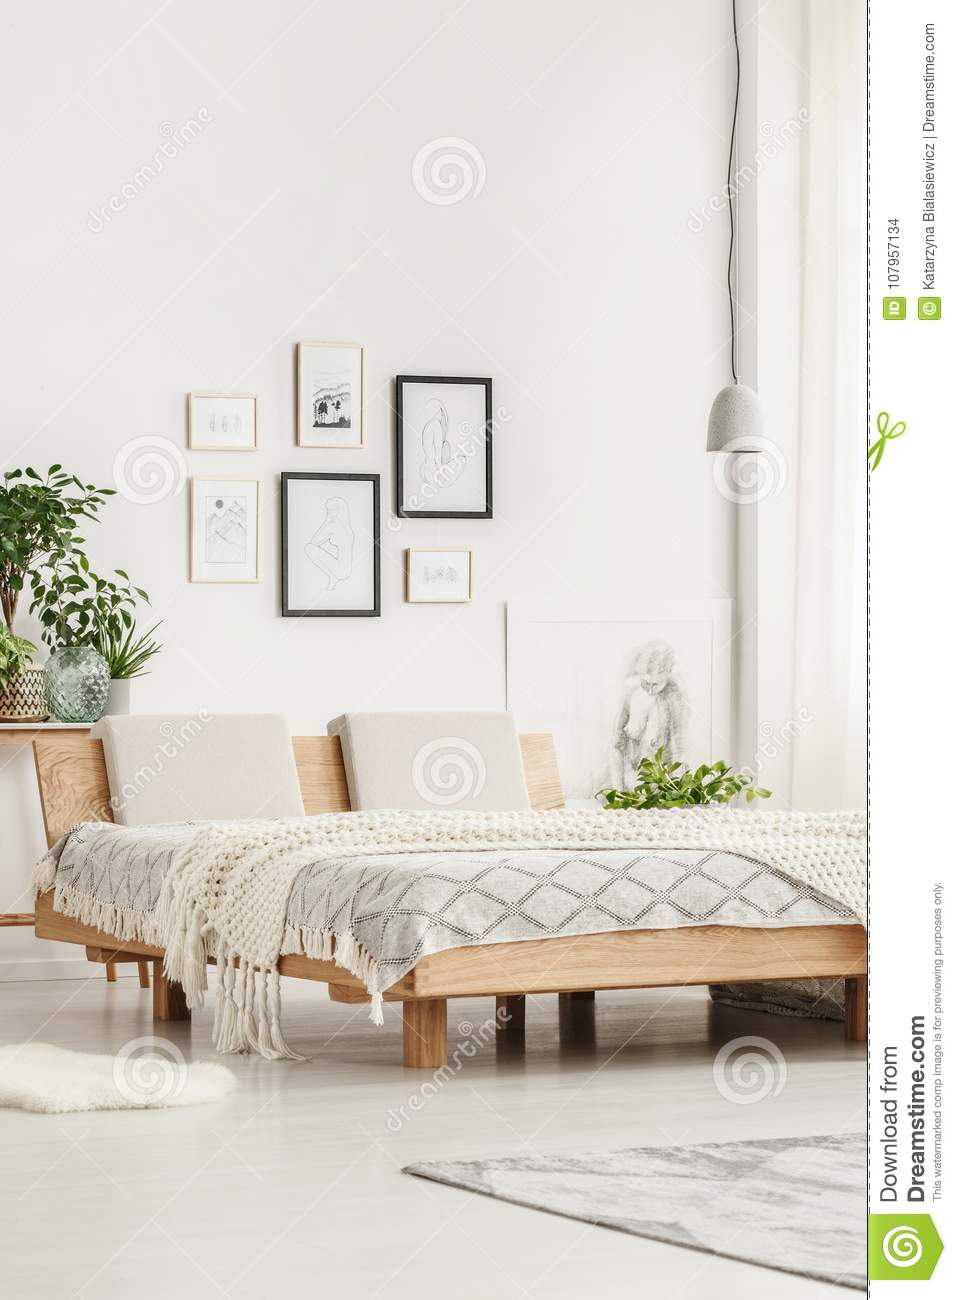 Simple Bed Simple Bed And Drawings Stock Photo Image Of Home Interior